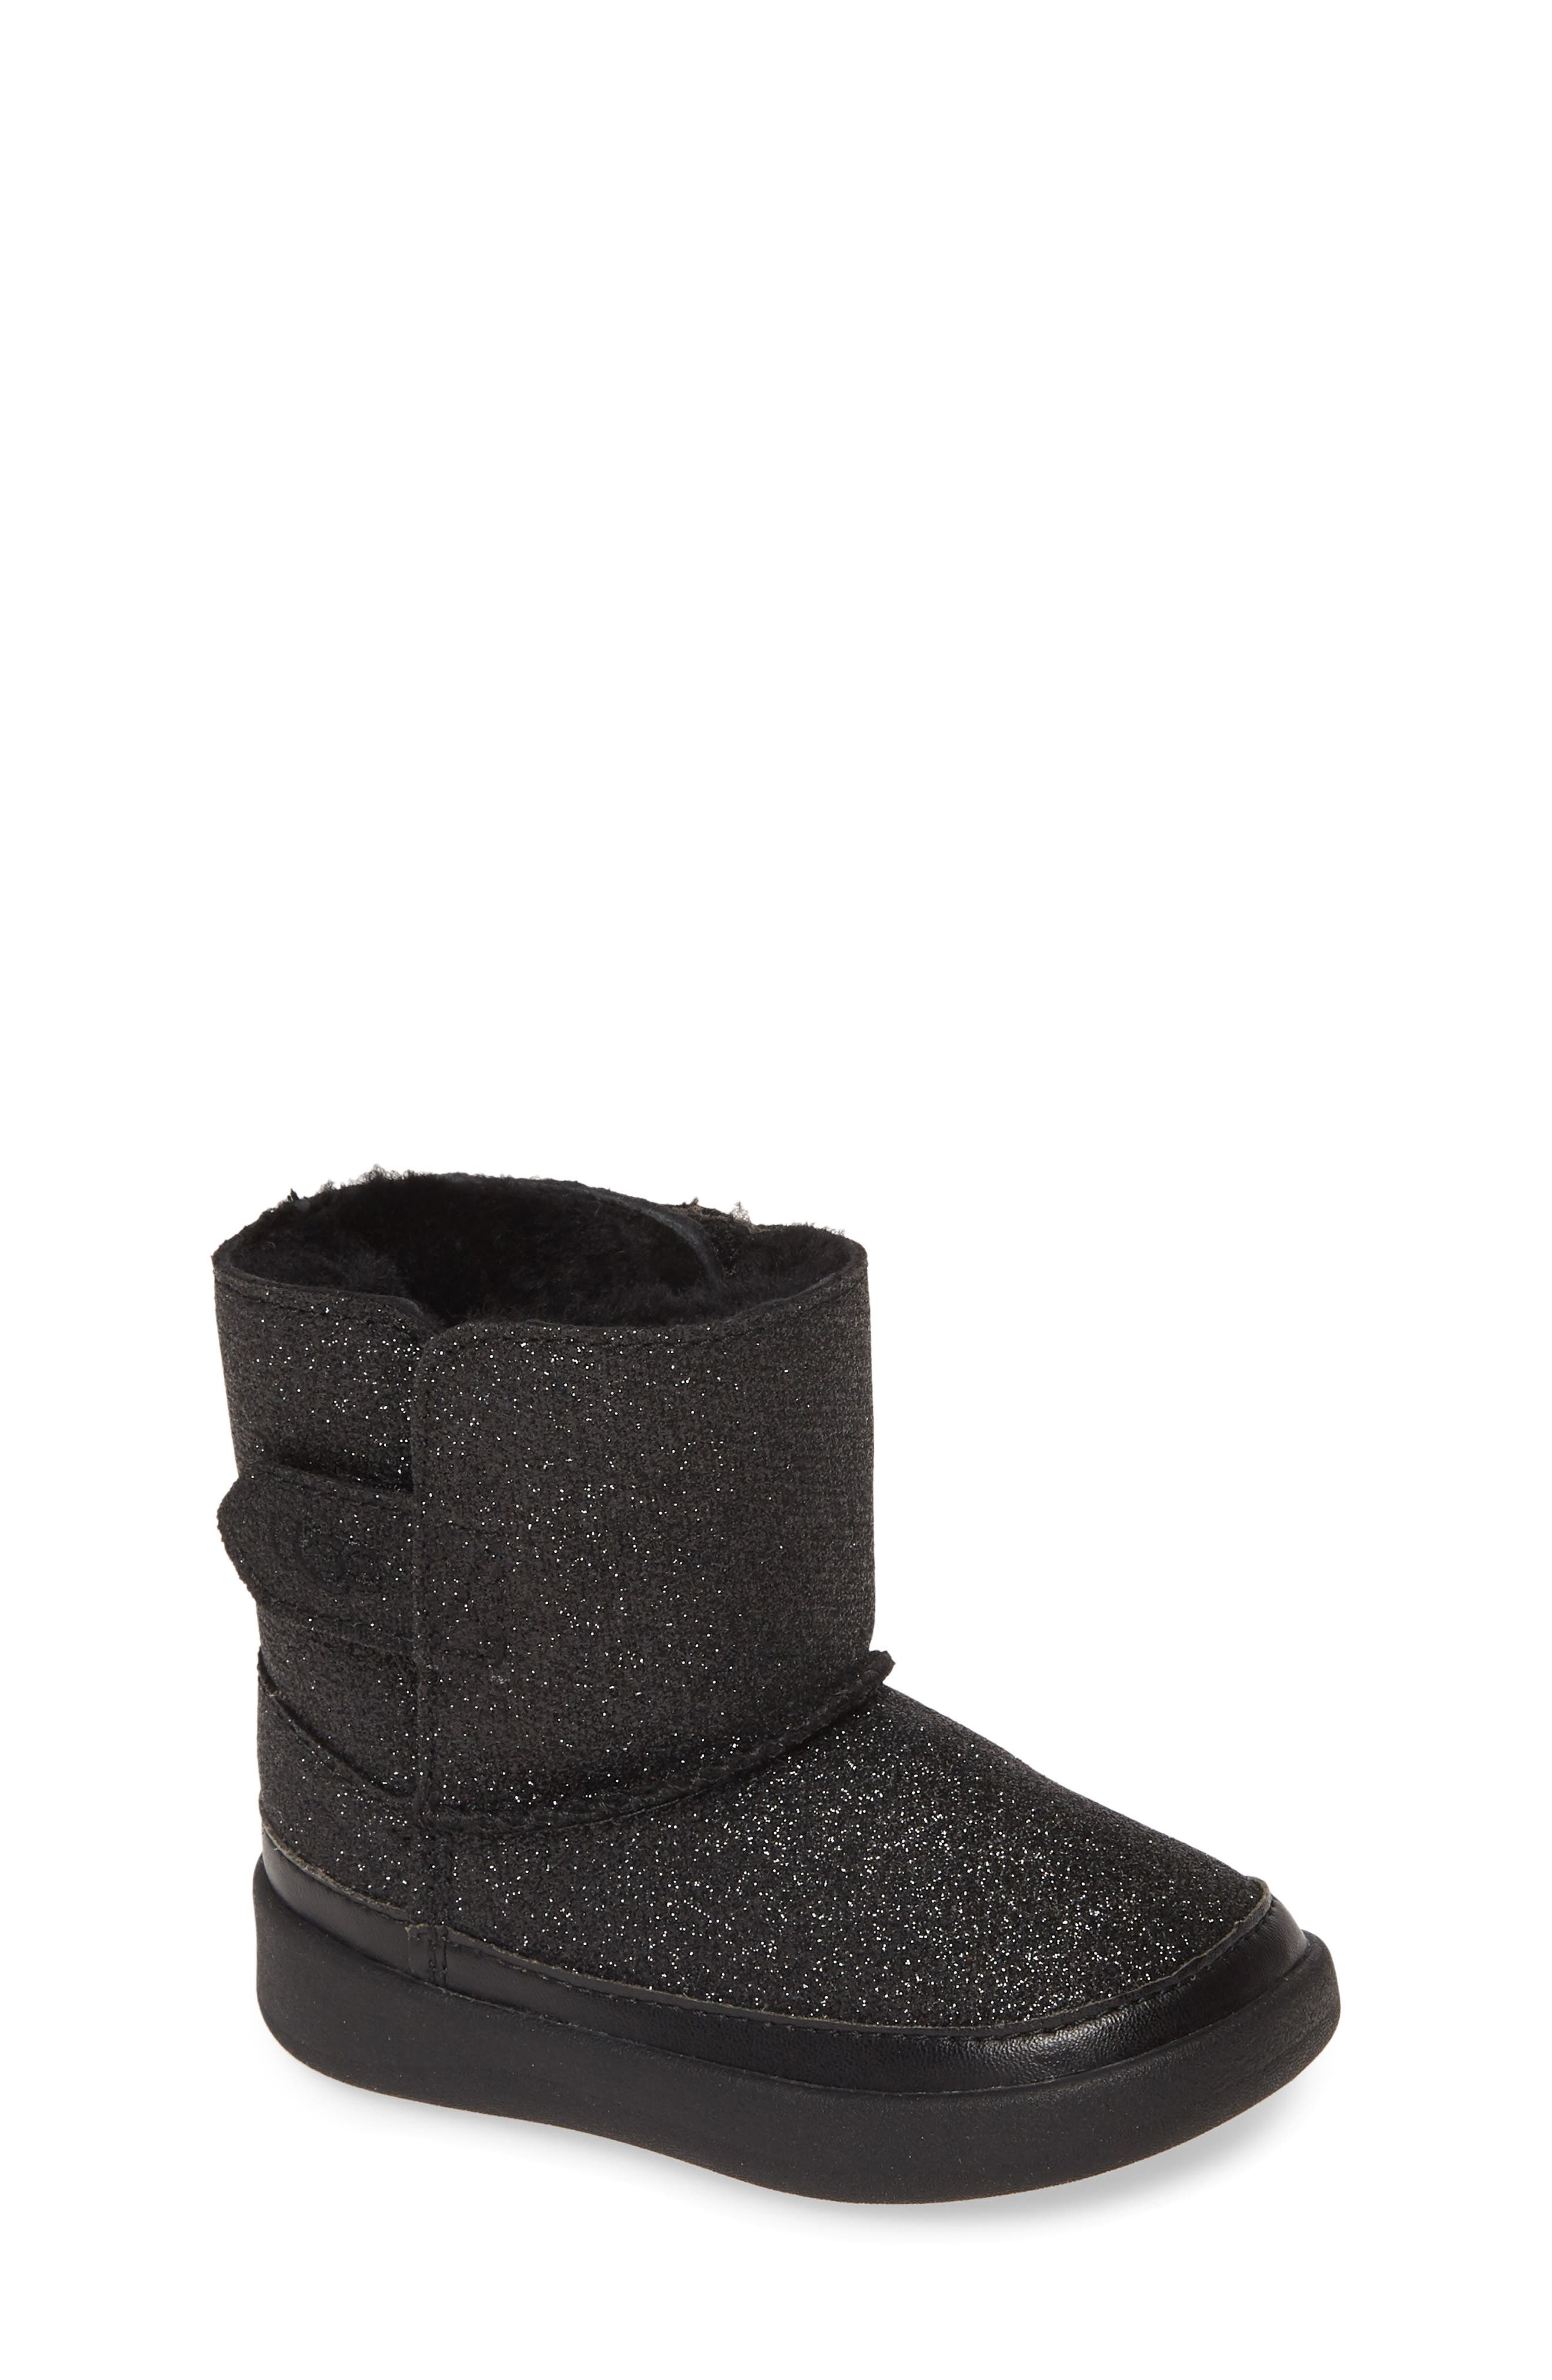 Details about Adidas Originals Baby Winter Boot Kids Boots Snow Shoes Thick Lining show original title